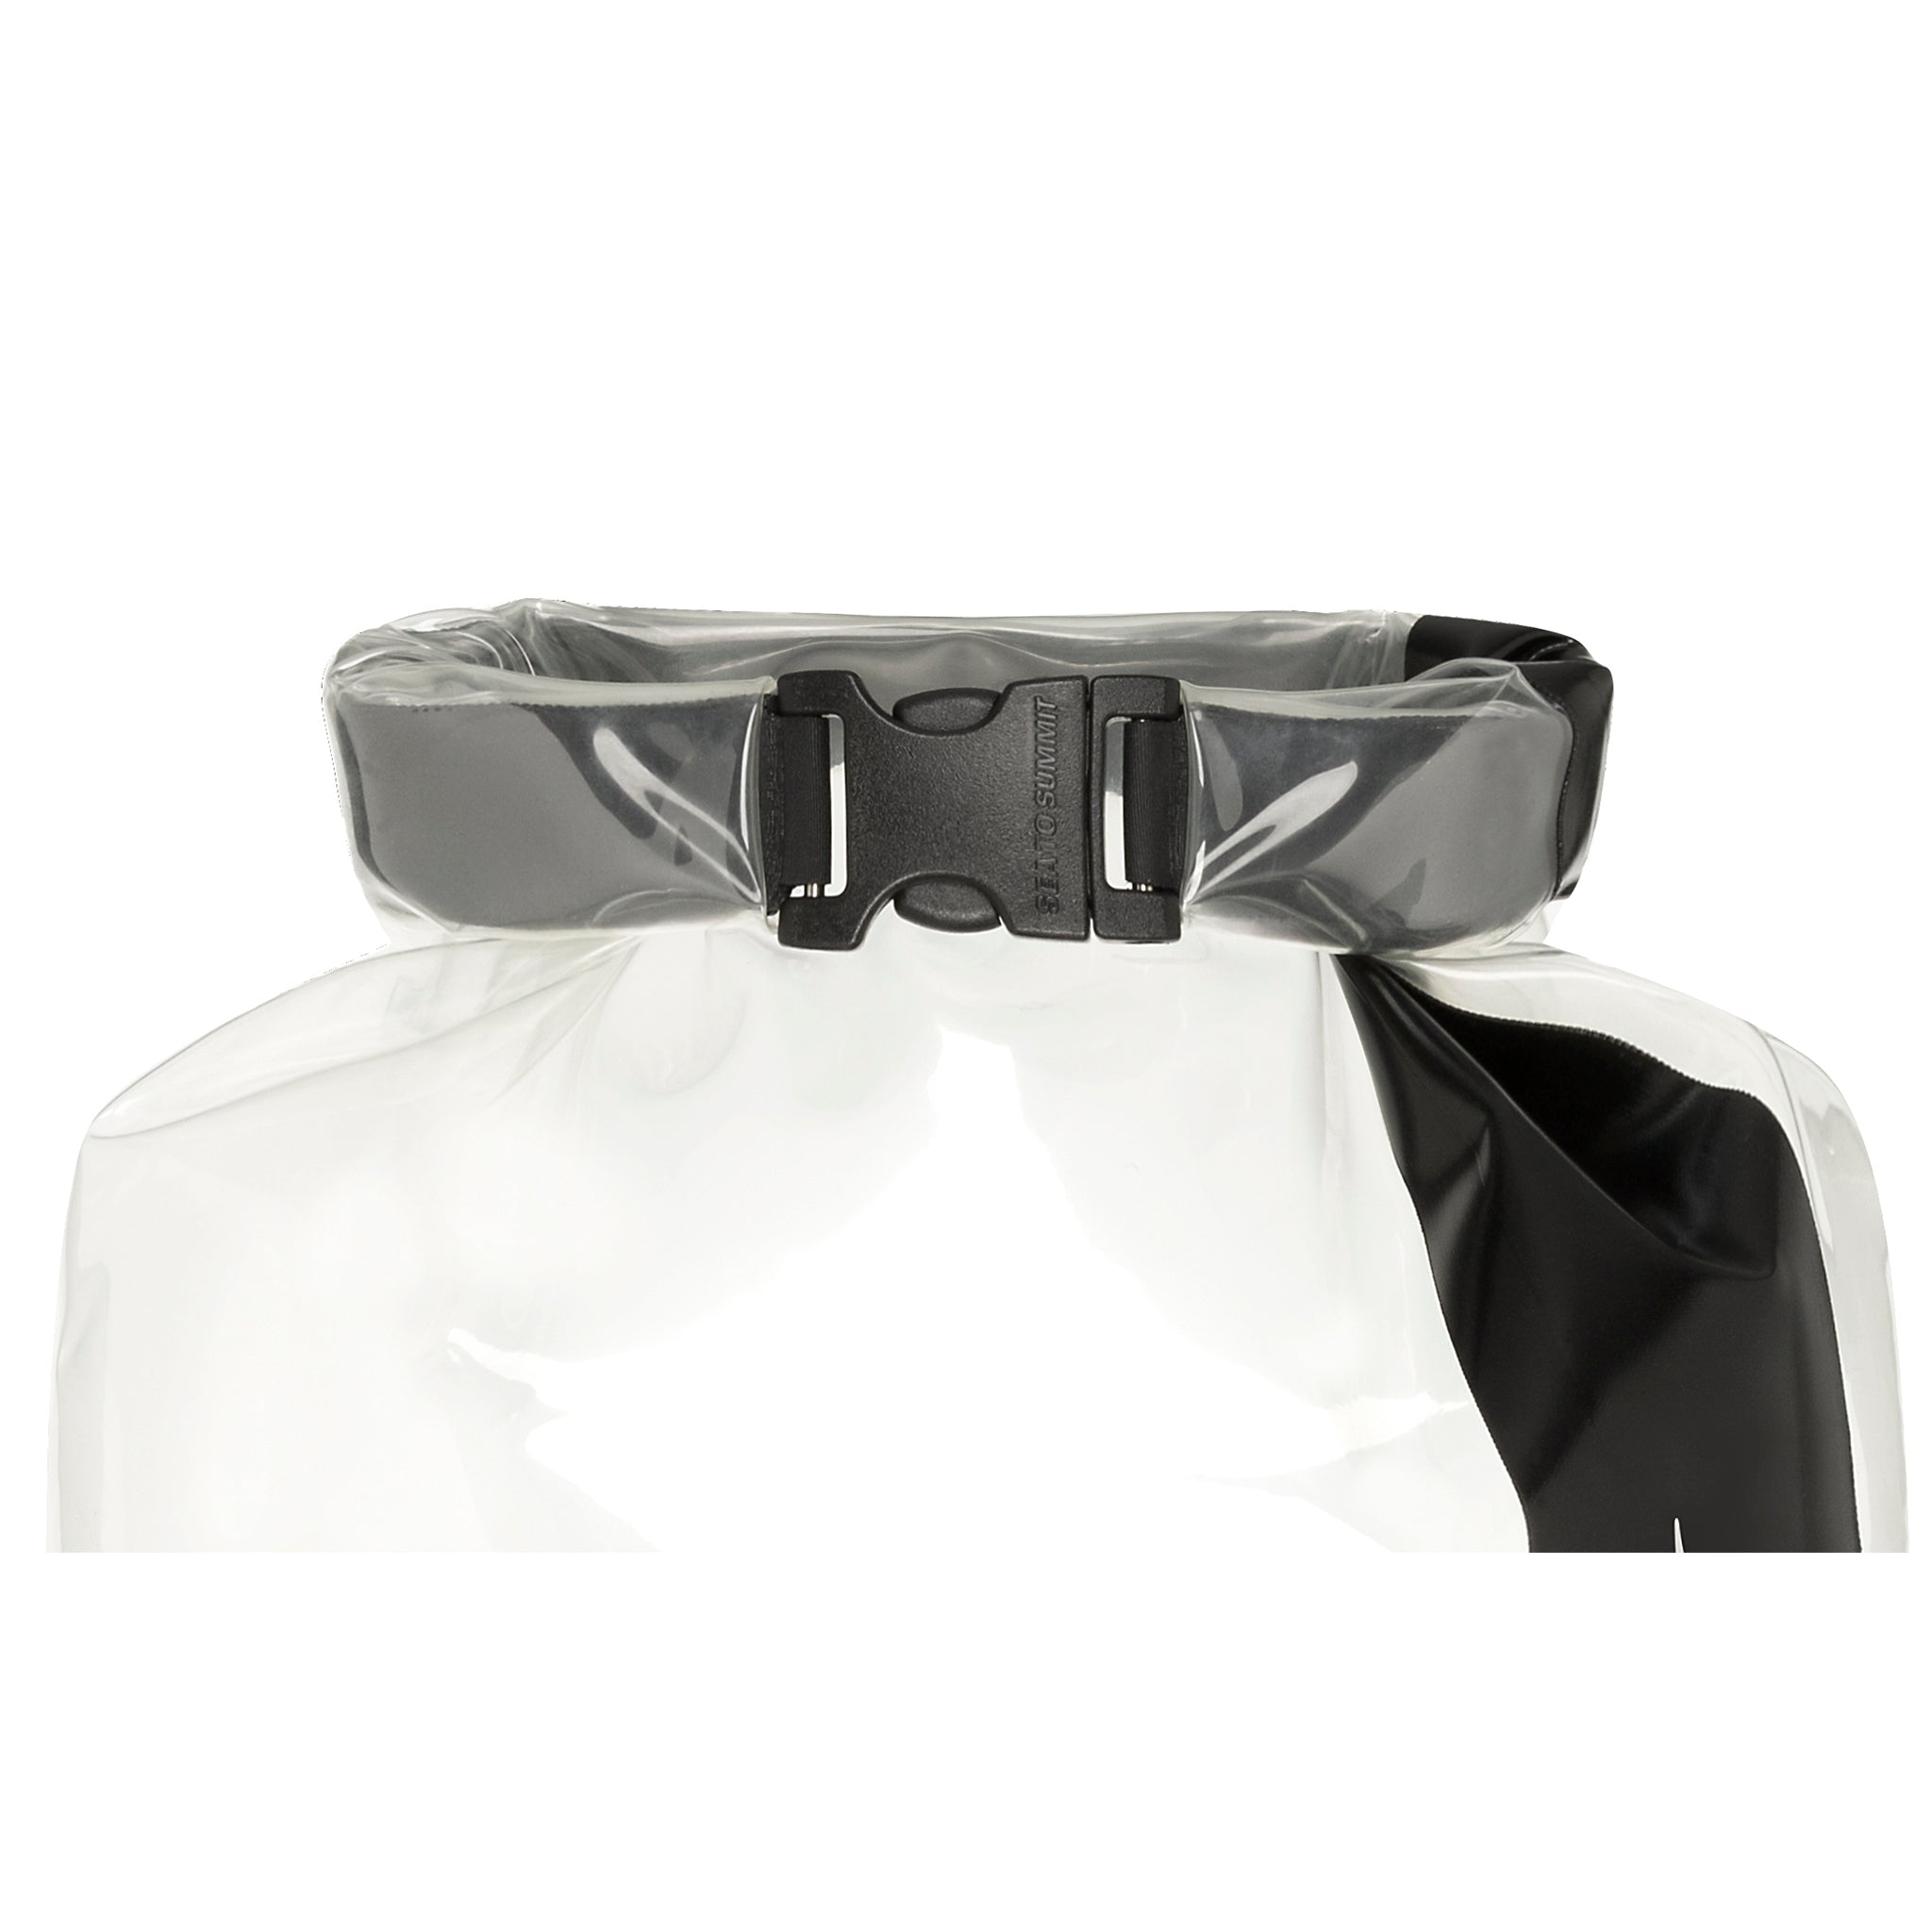 Clear Stopper _ durable waterproof dry bag _ roll-top